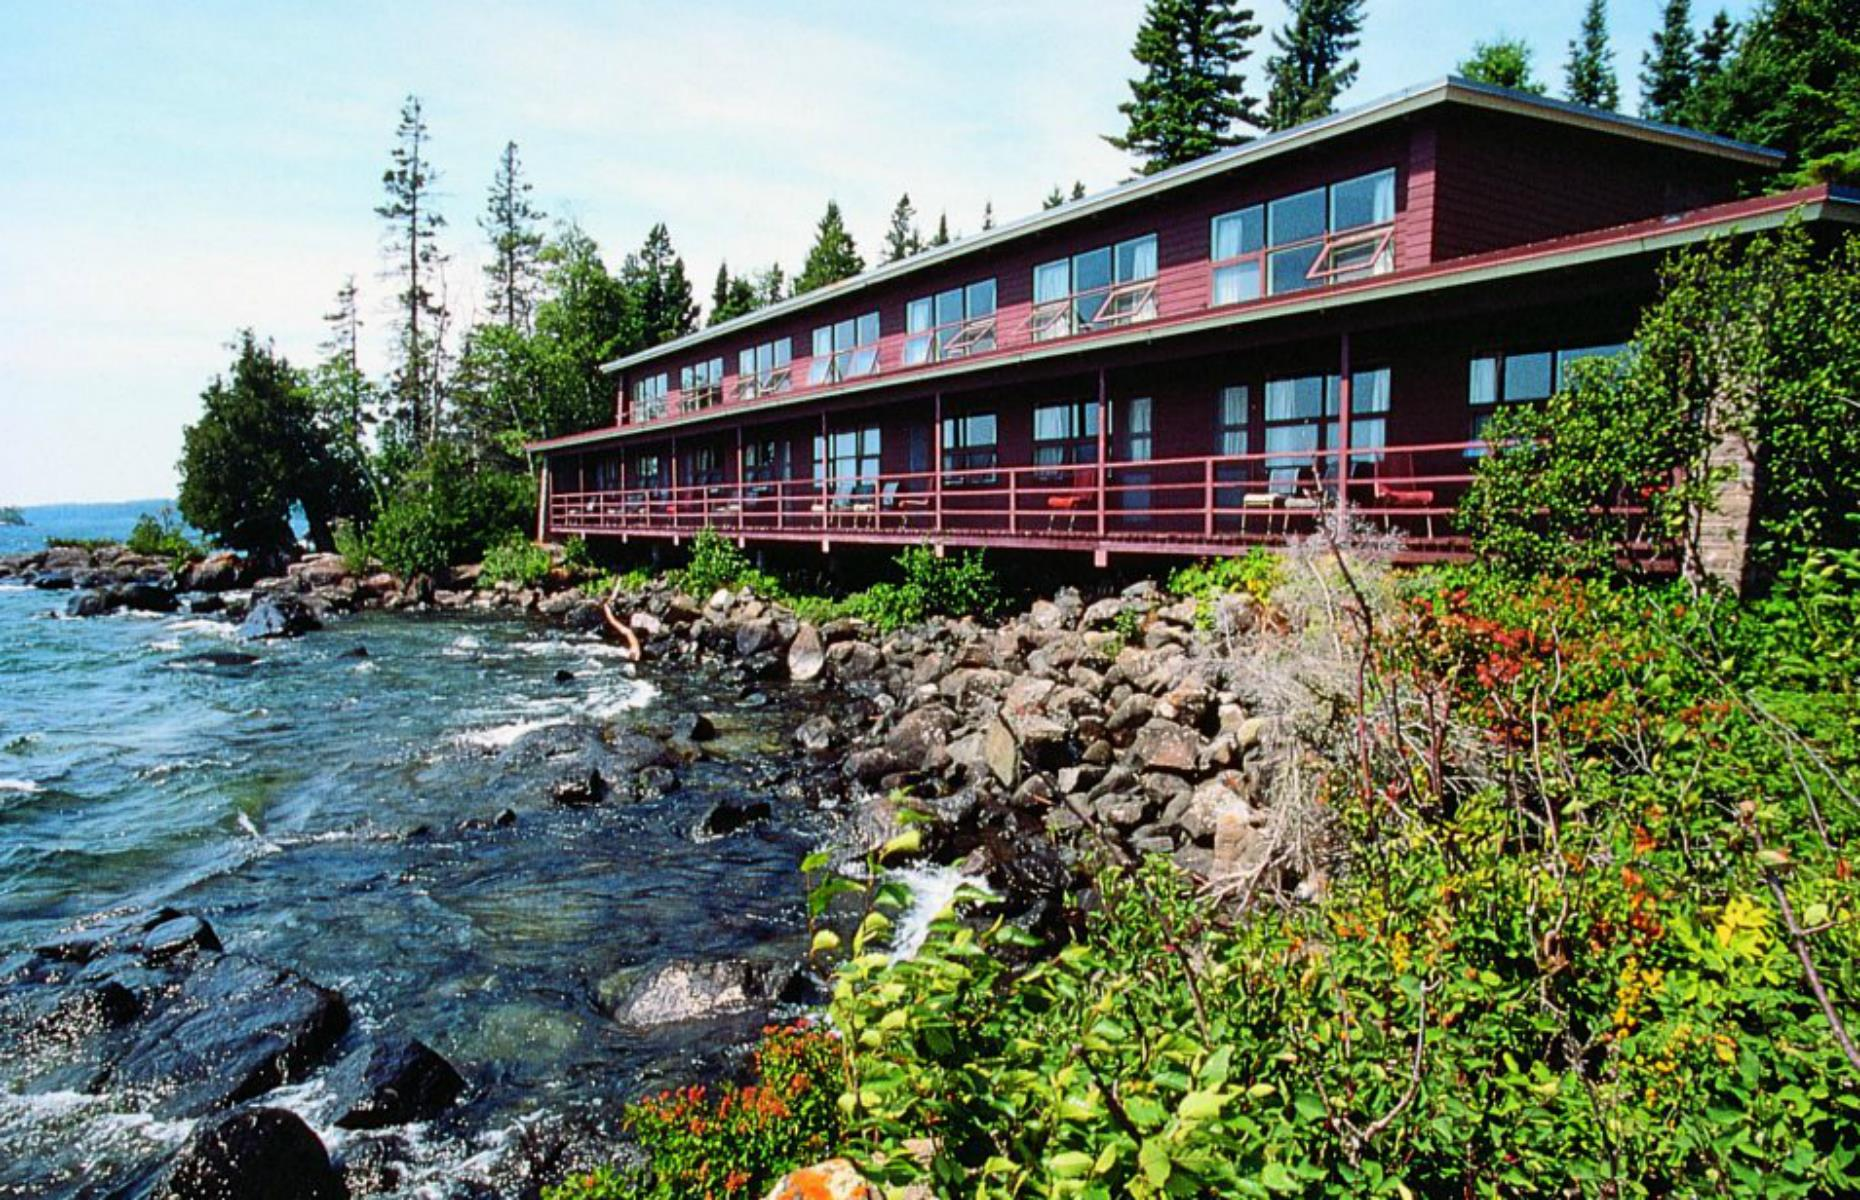 Slide 24 of 52: Rock Harbor Lodge perches on the edge of Lake Superior and the best rooms, cabins and cottages have balconies overlooking the water. The inside is cozy and classically decorated, with wood paneling and chairs facing the windows to make the most of the views. And it's really the location that makes this so special: Isle Royale National Park is a car-free archipelago with densely forested trails, kayaking on lakes and canals, and endless opportunities for blissful solitude. The lodge is taking bookings for the summer 2021 season.